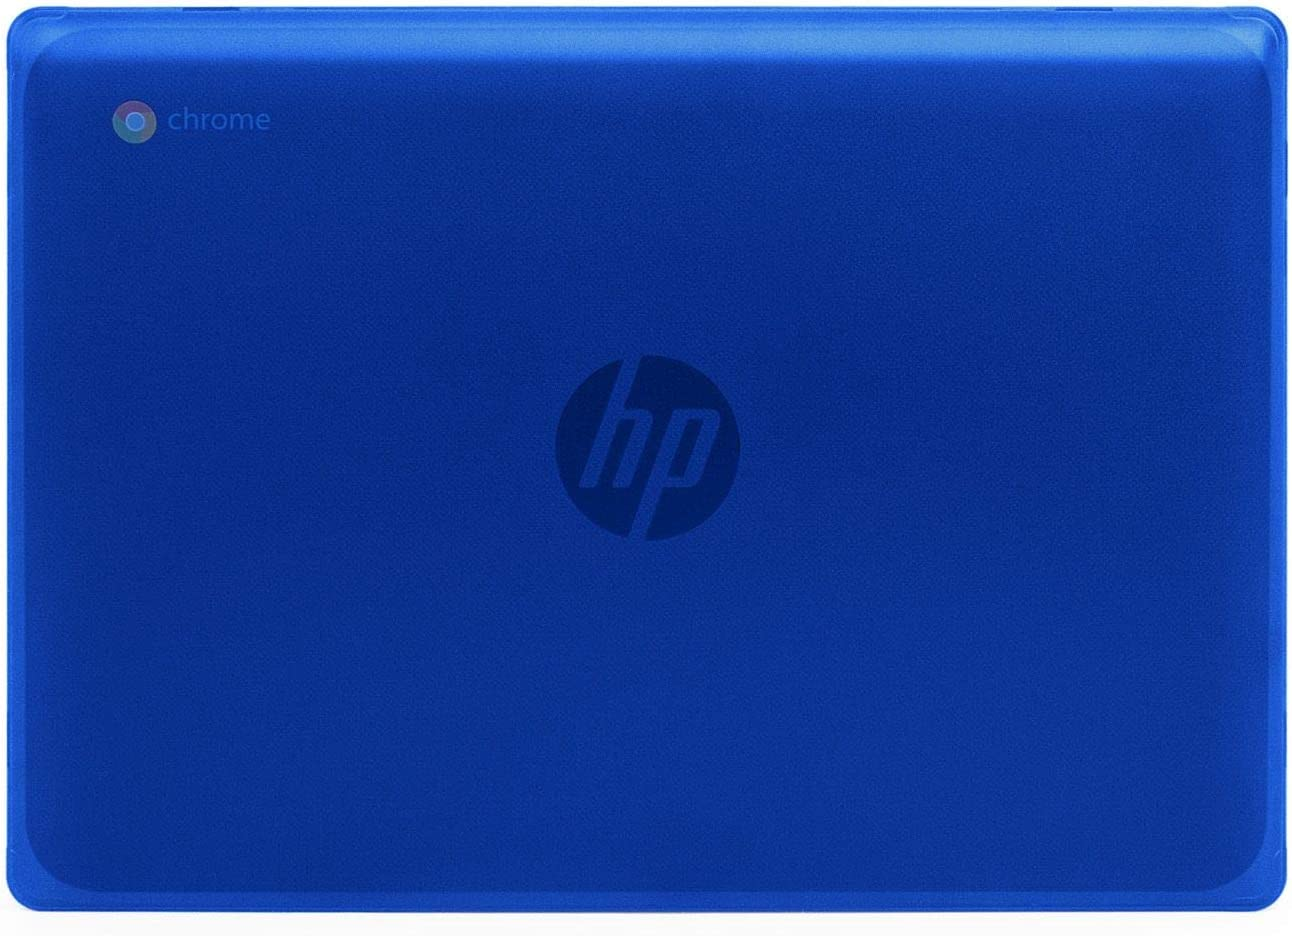 "mCover Hard Shell Case for New 2020 11.6"" HP Chromebook 11 G8 EE laptops (Blue)"